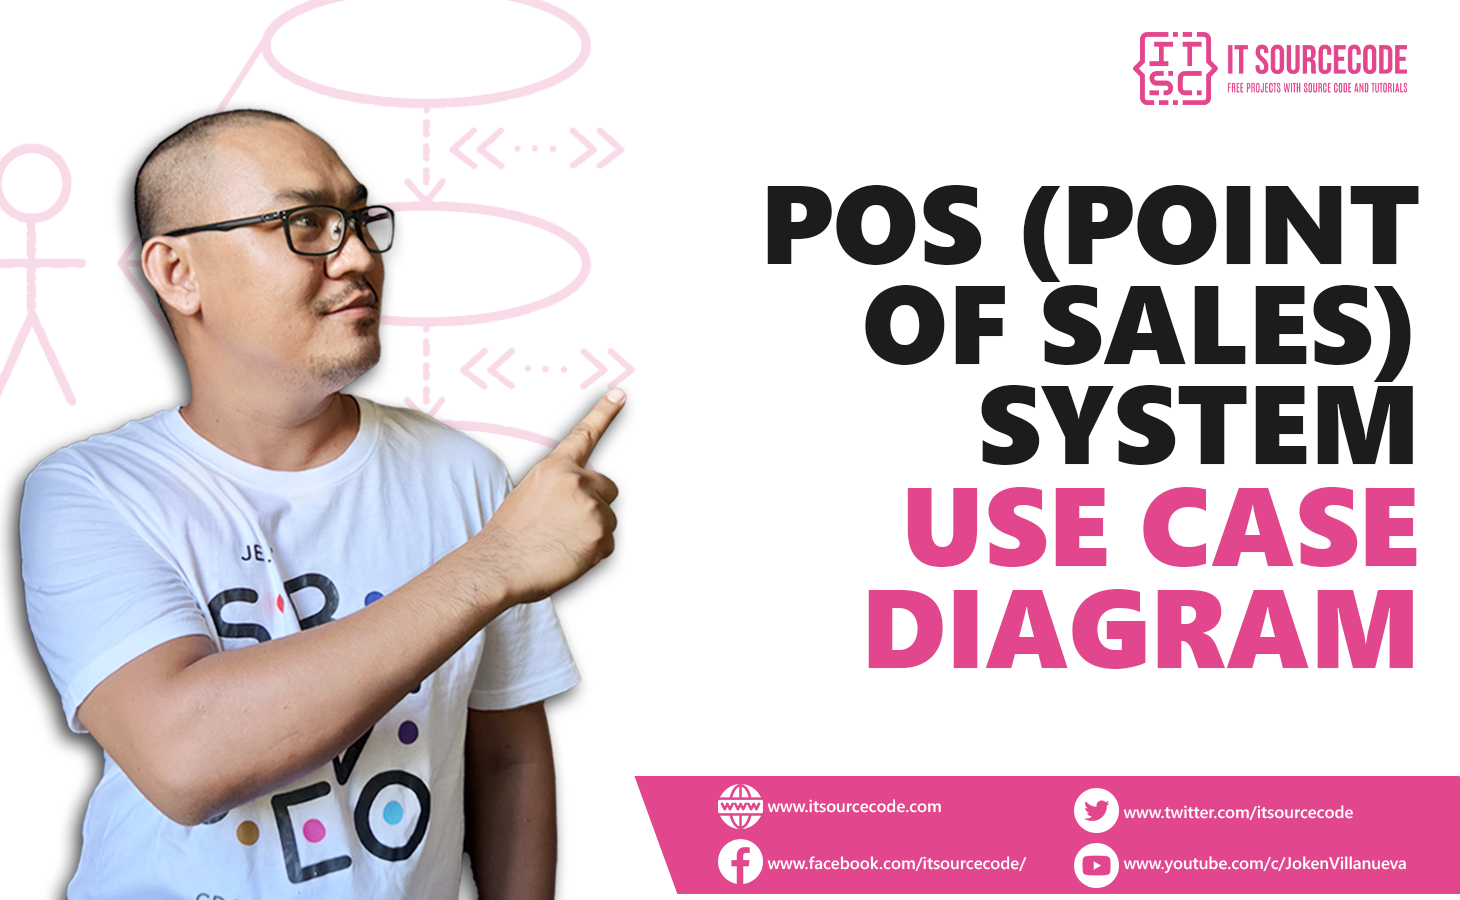 Use Case Diagram for POS (Point of Sale) System